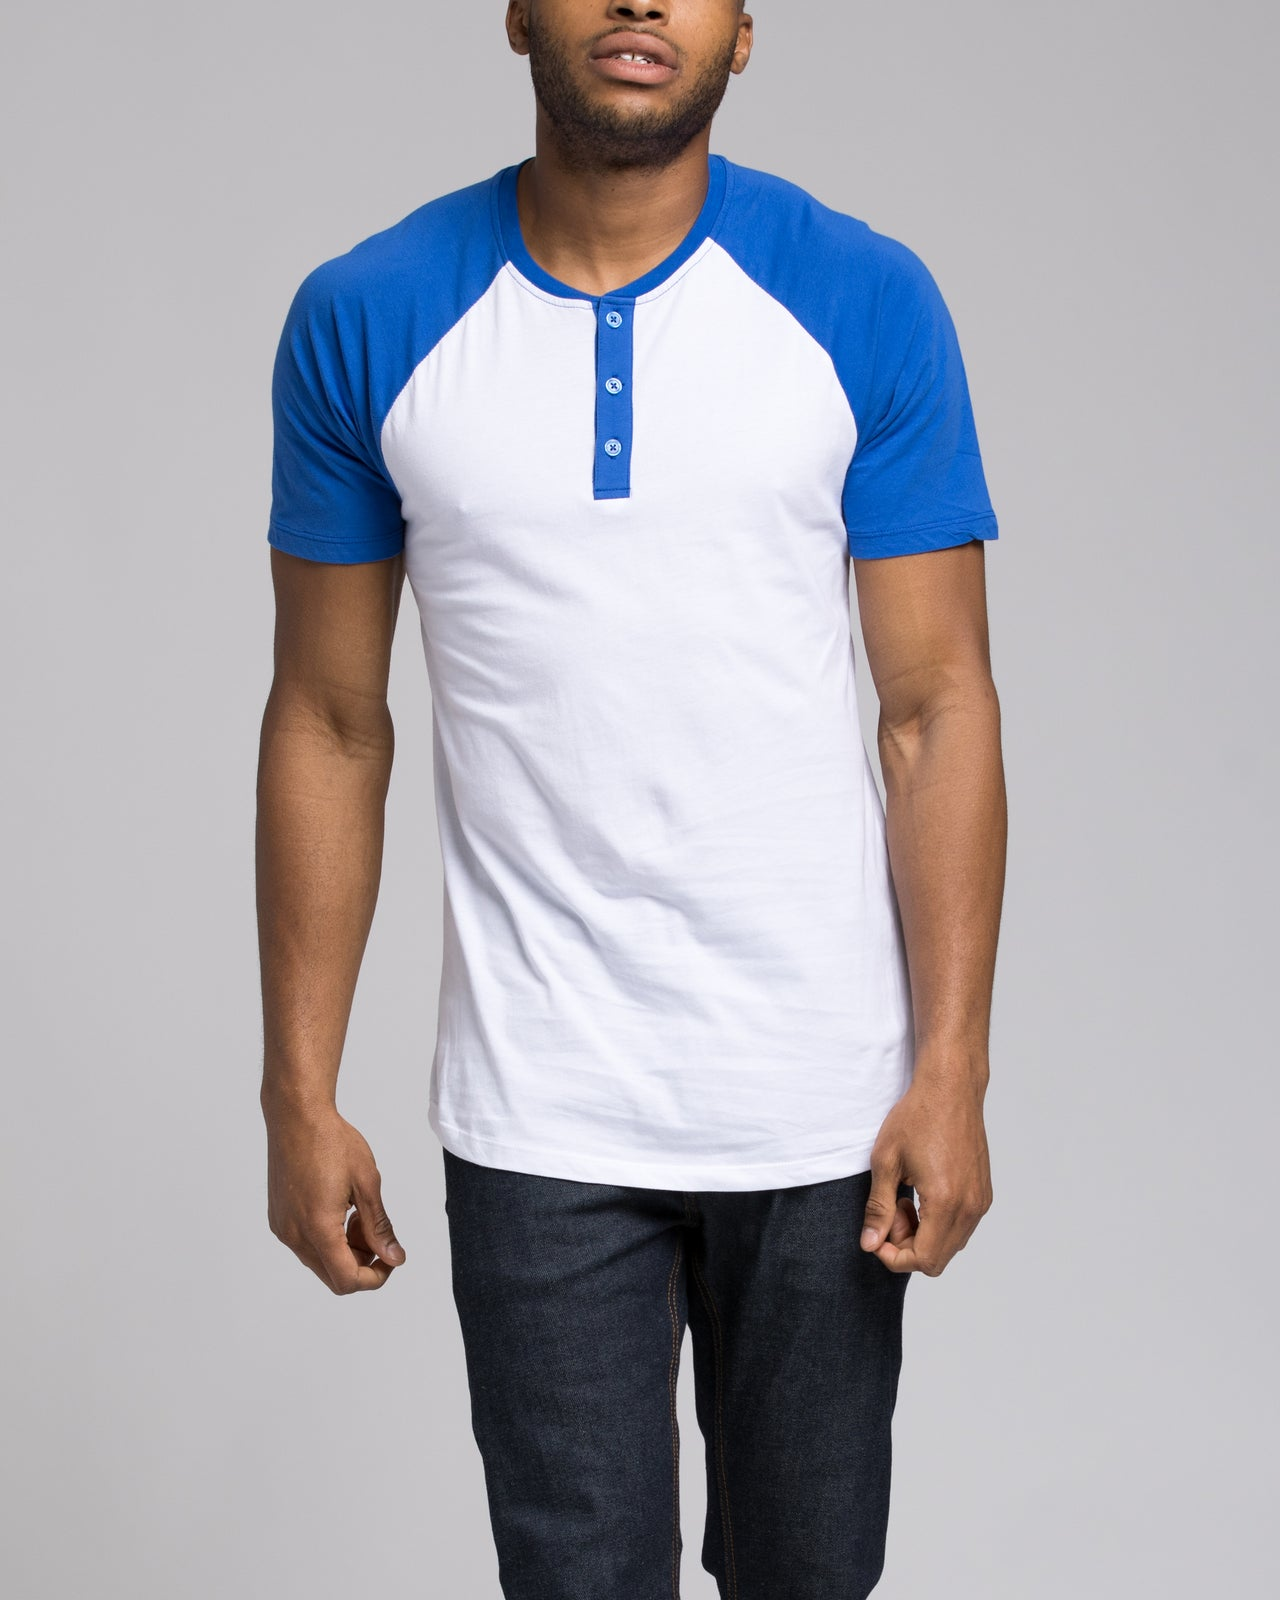 Short Sleeve Henley - Color: Royal/White | White